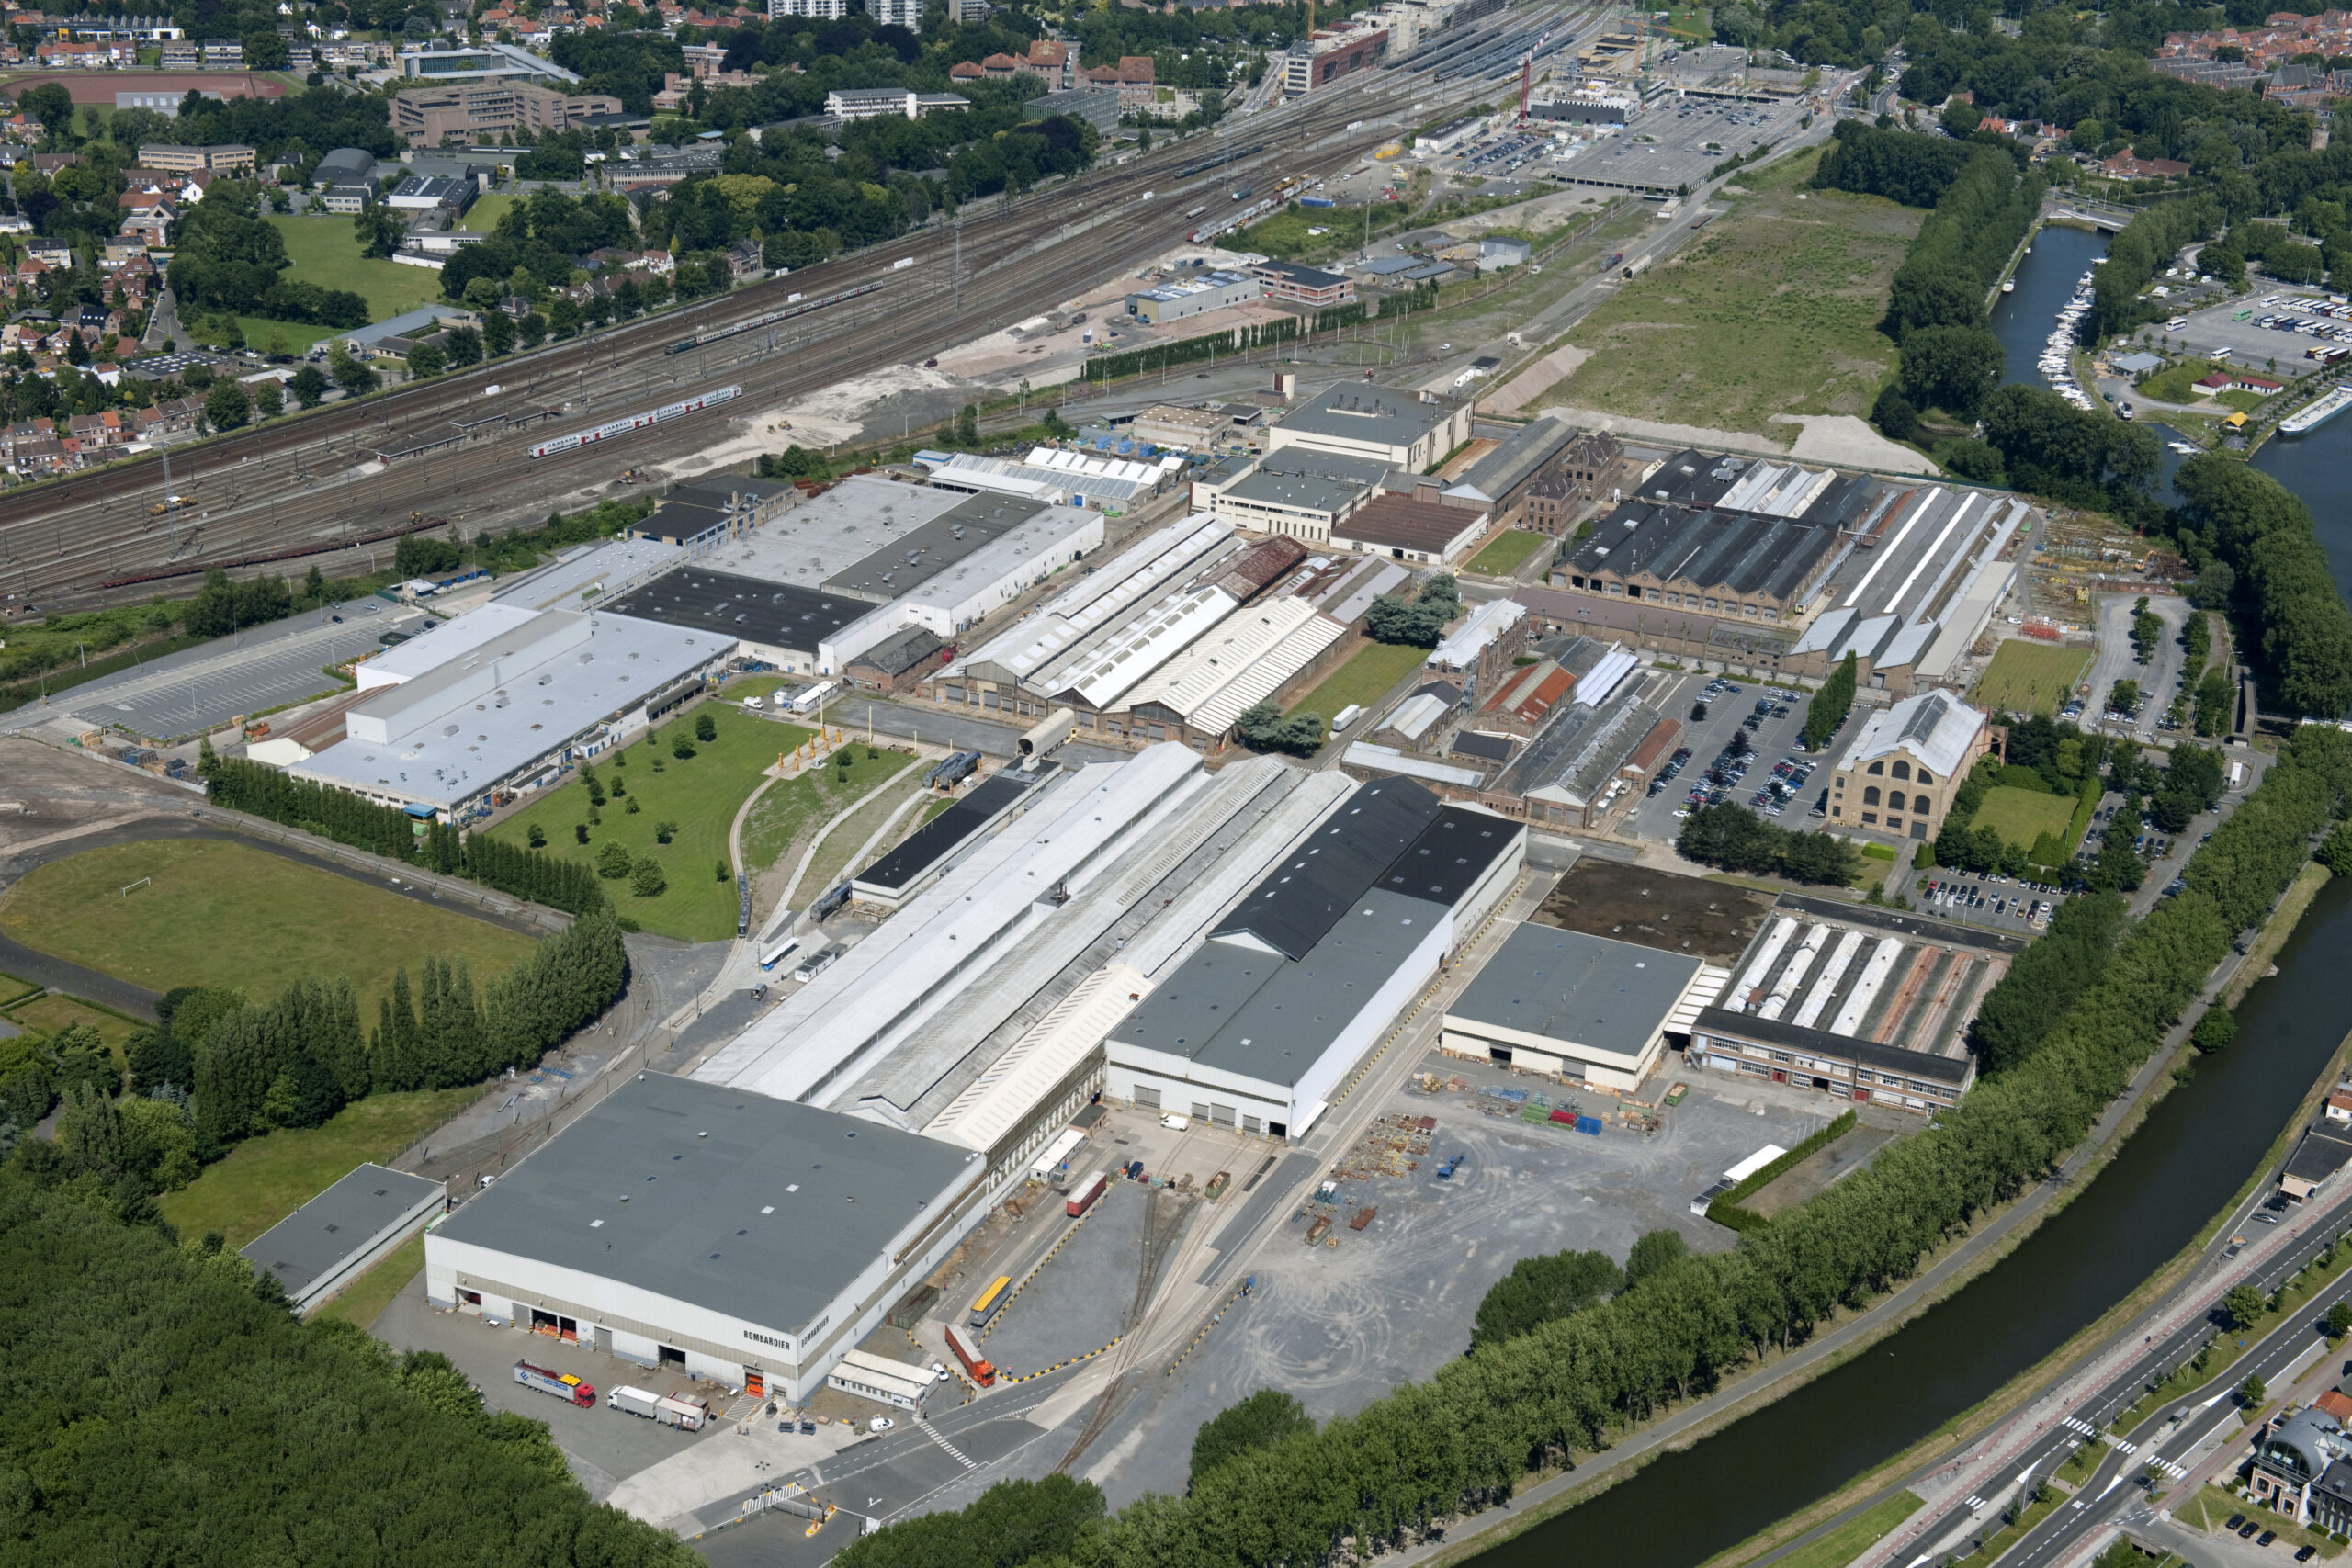 Bombardier facility in Bruges